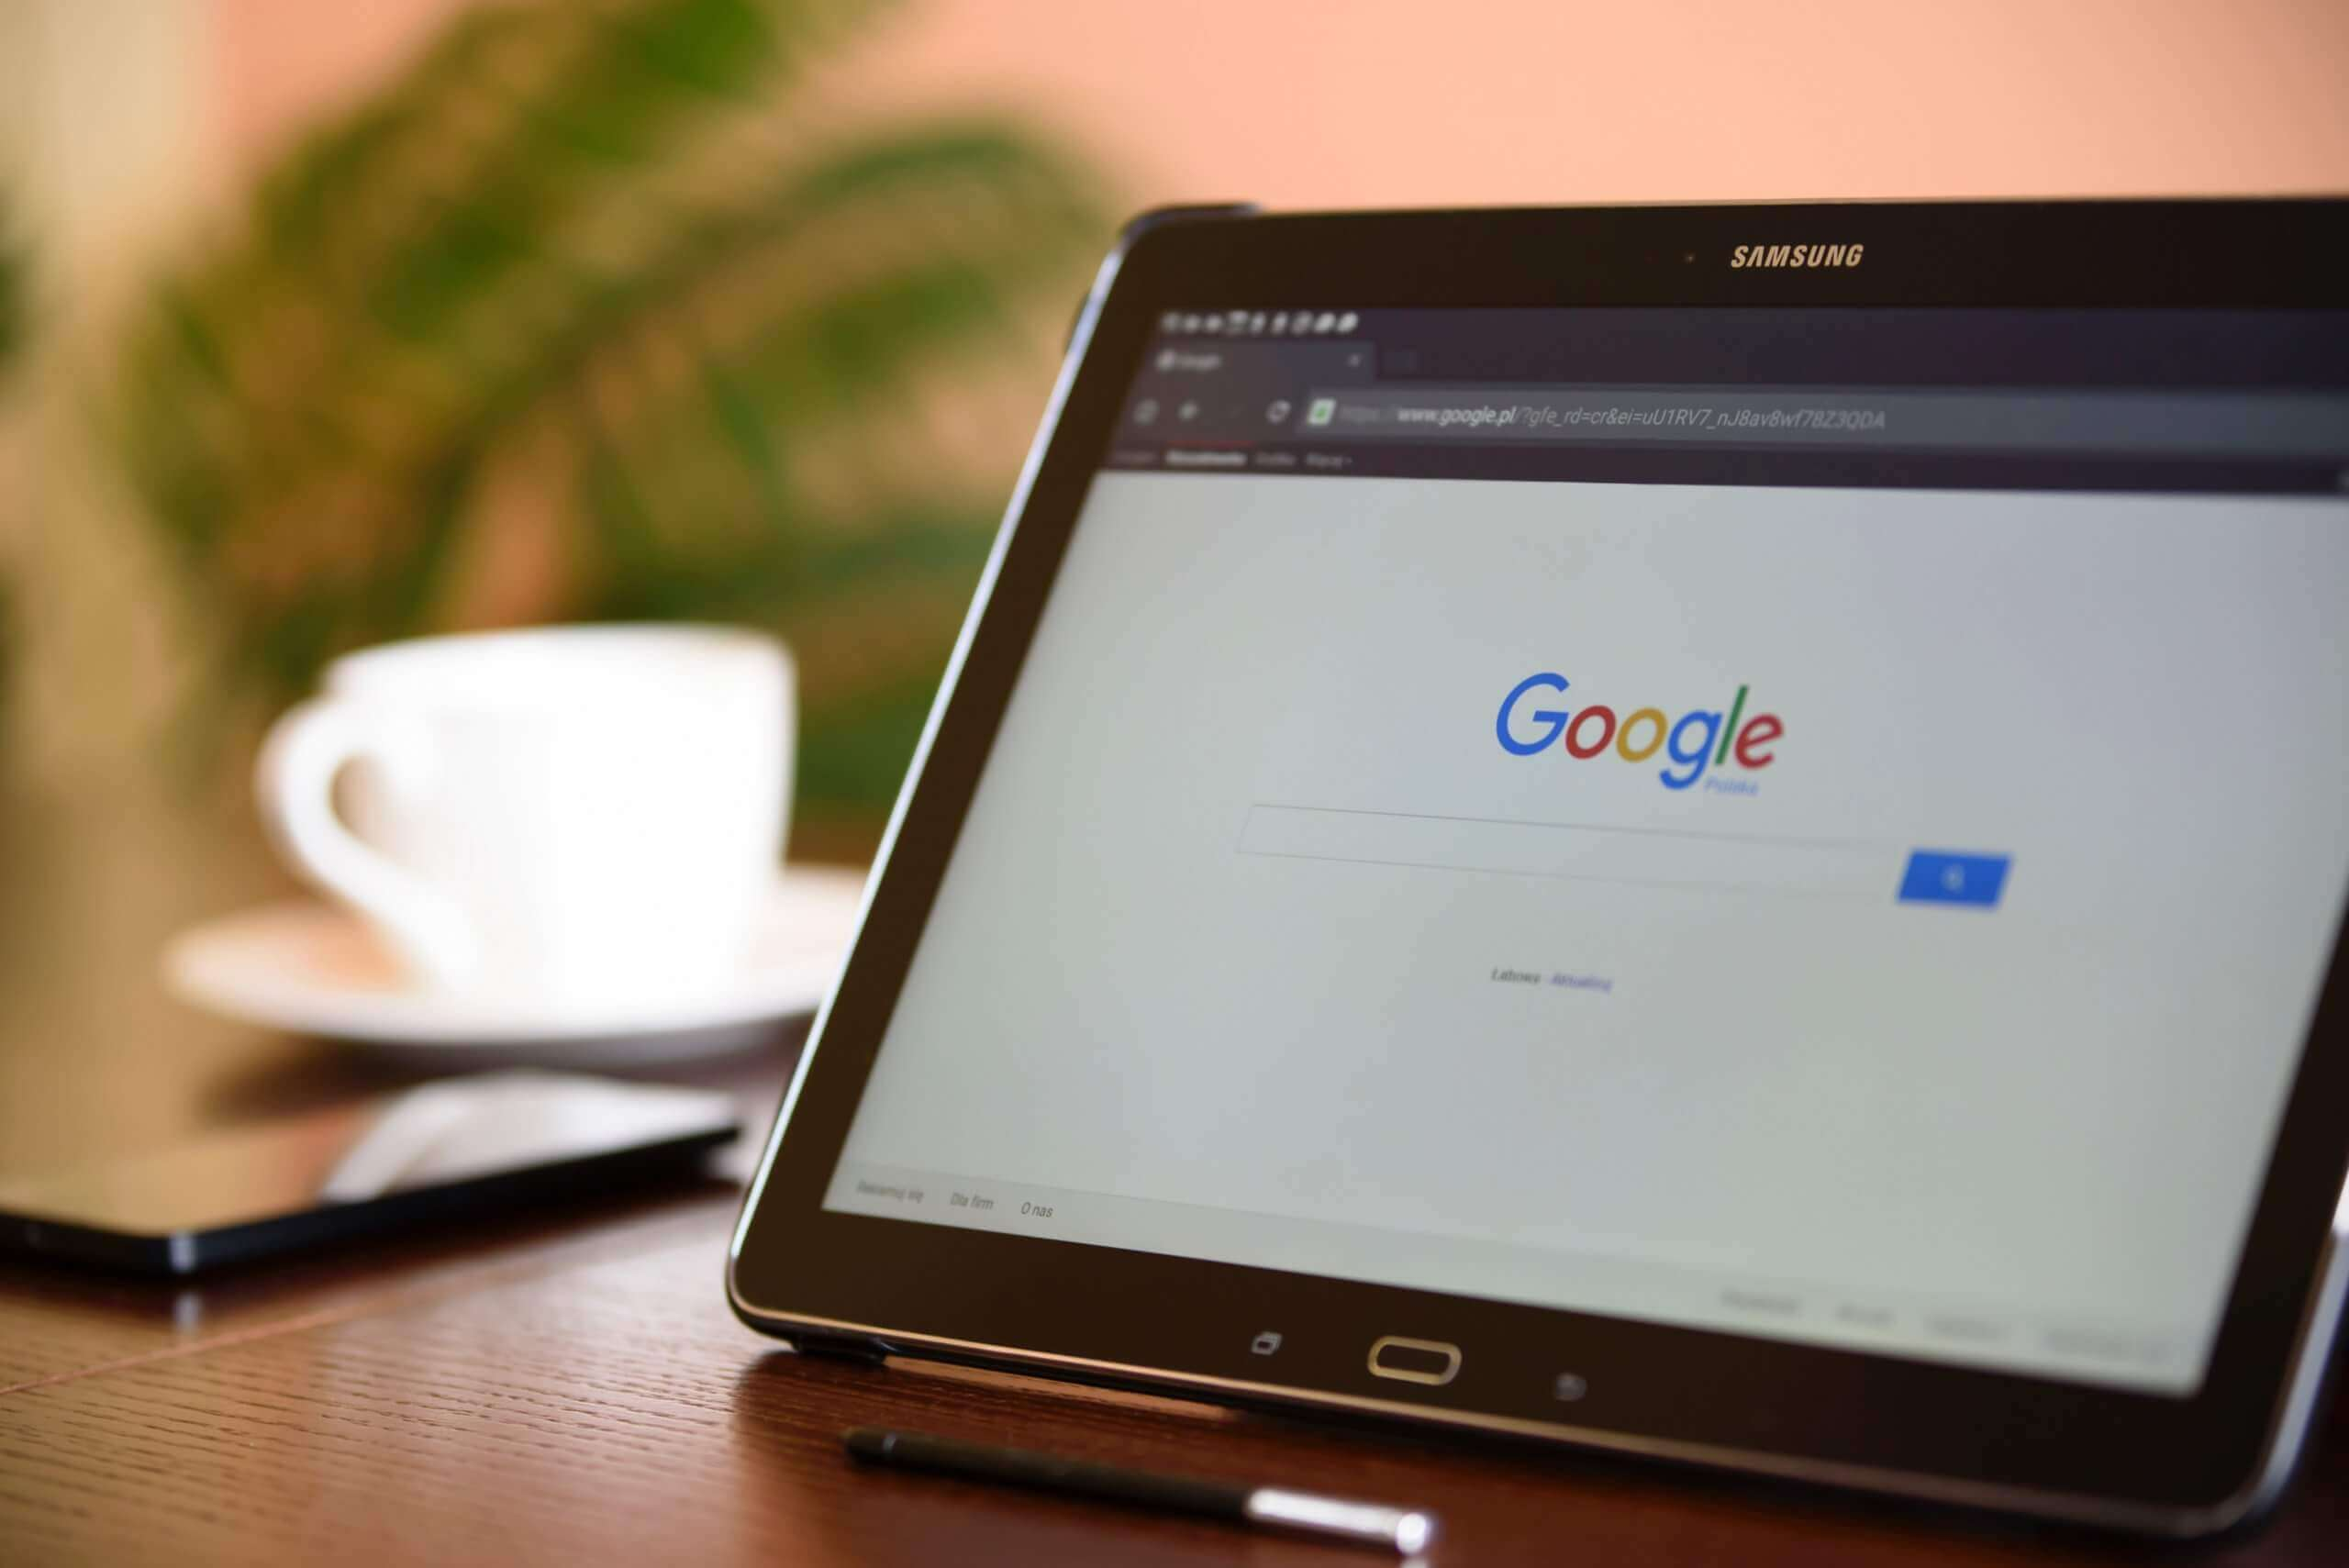 Google Smart Campaigns • PPC • A real life test of how it works